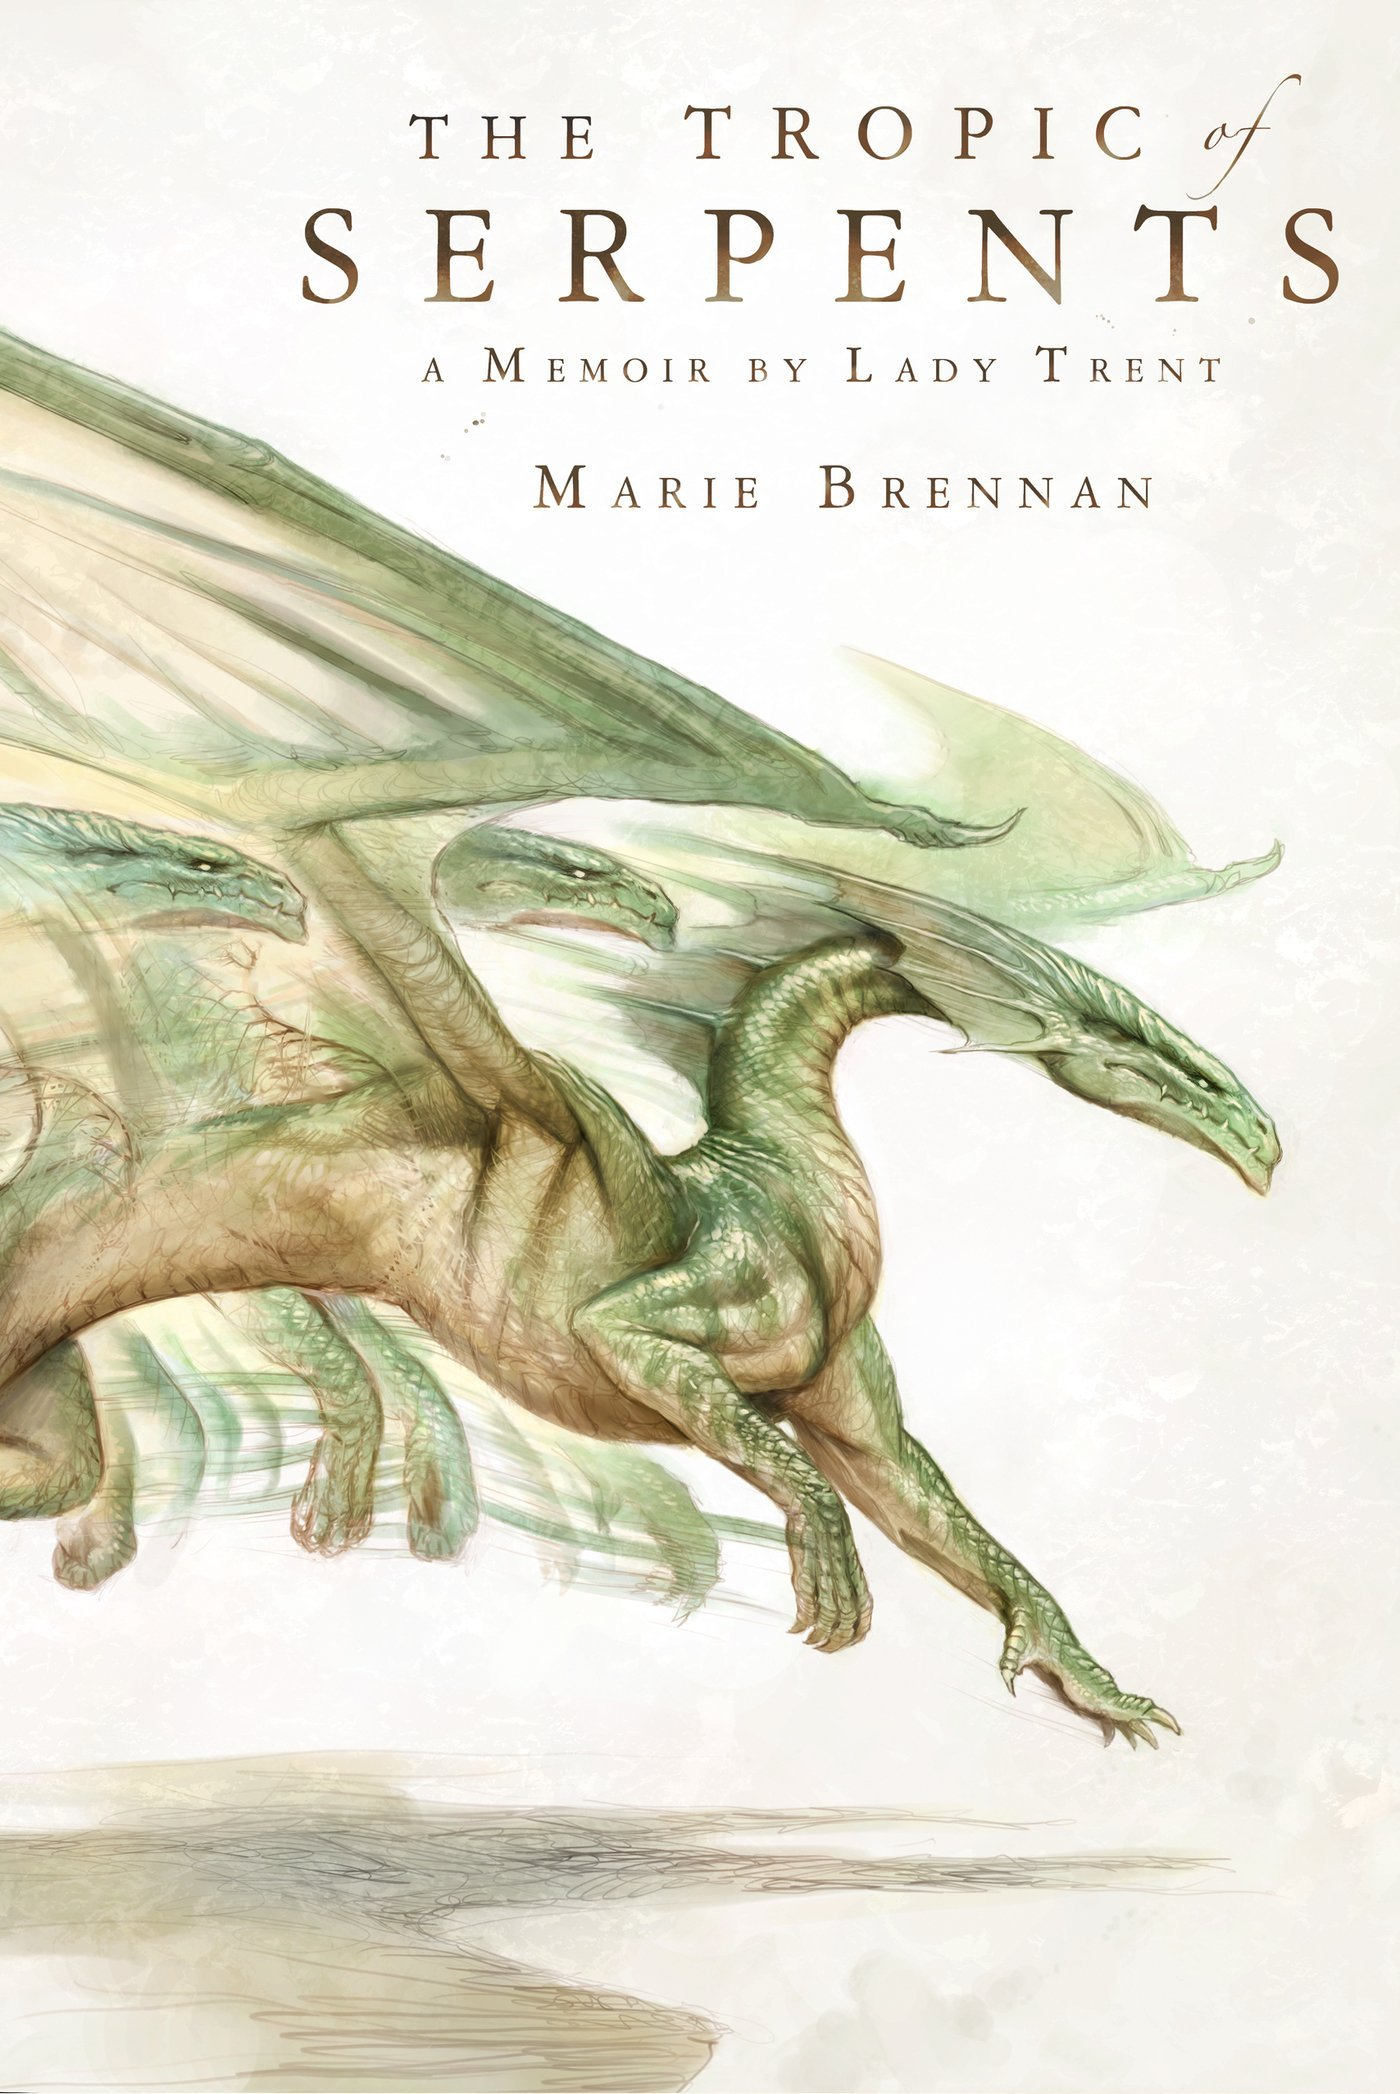 The Tropic of Serpents: A Memoir by Lady Trent (Natural History of Dragons)  by Marie Brennan (17-Feb-2015) Paperback: Books - Amazon.ca